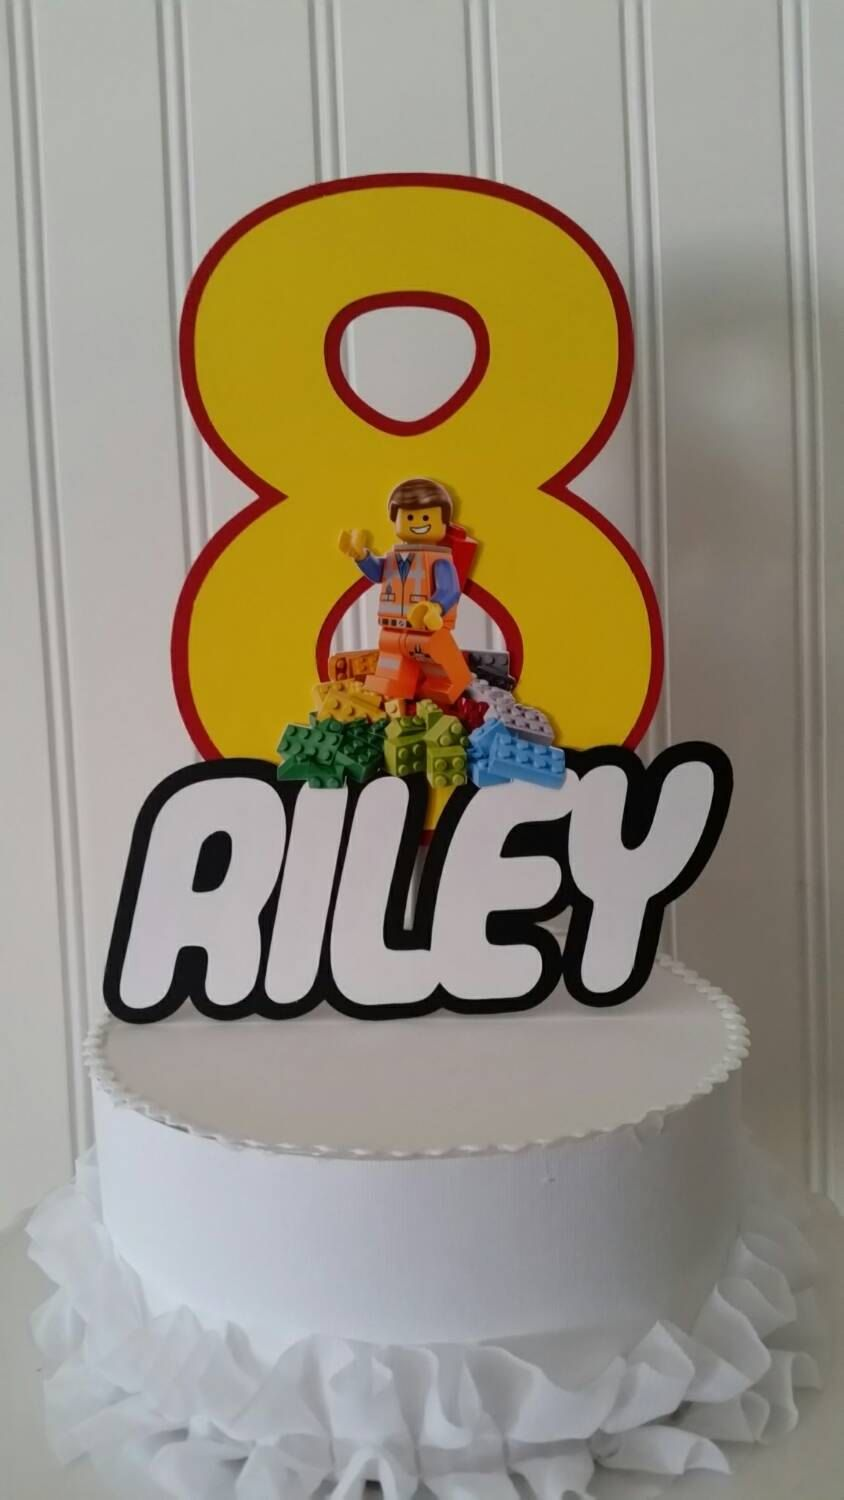 Remarkable Featured Etsy Products With Images Lego Cake Topper Lego Cake Funny Birthday Cards Online Alyptdamsfinfo